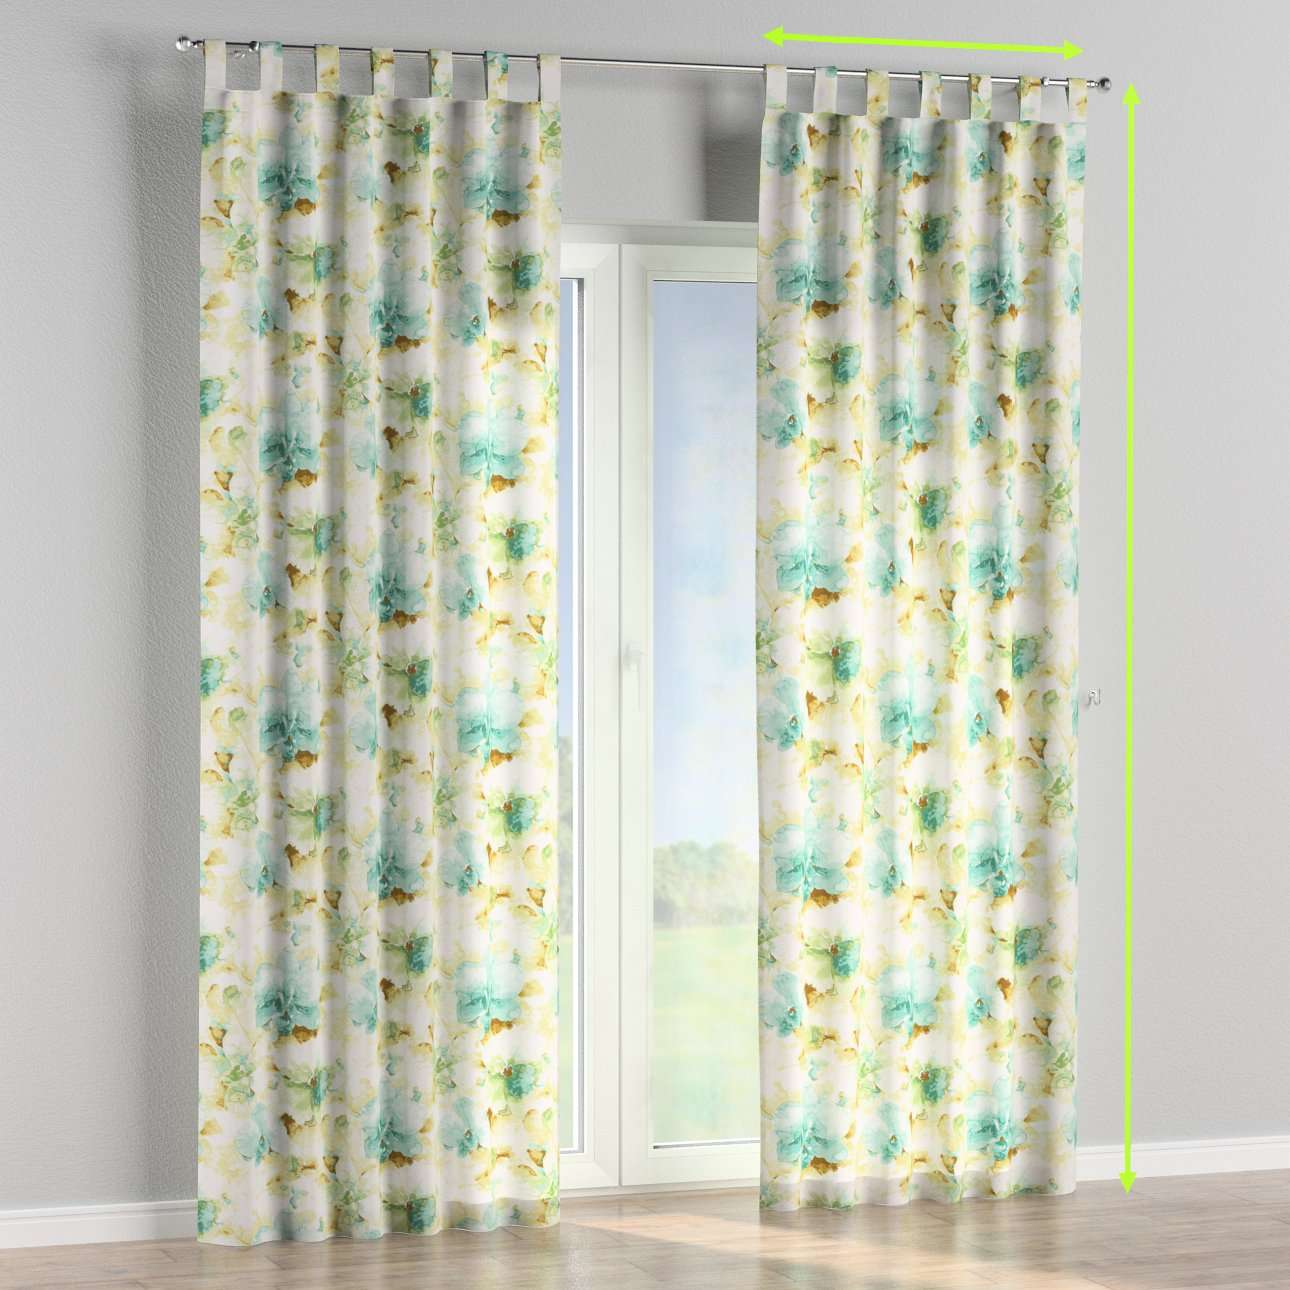 Tab top curtains in collection Acapulco, fabric: 141-35